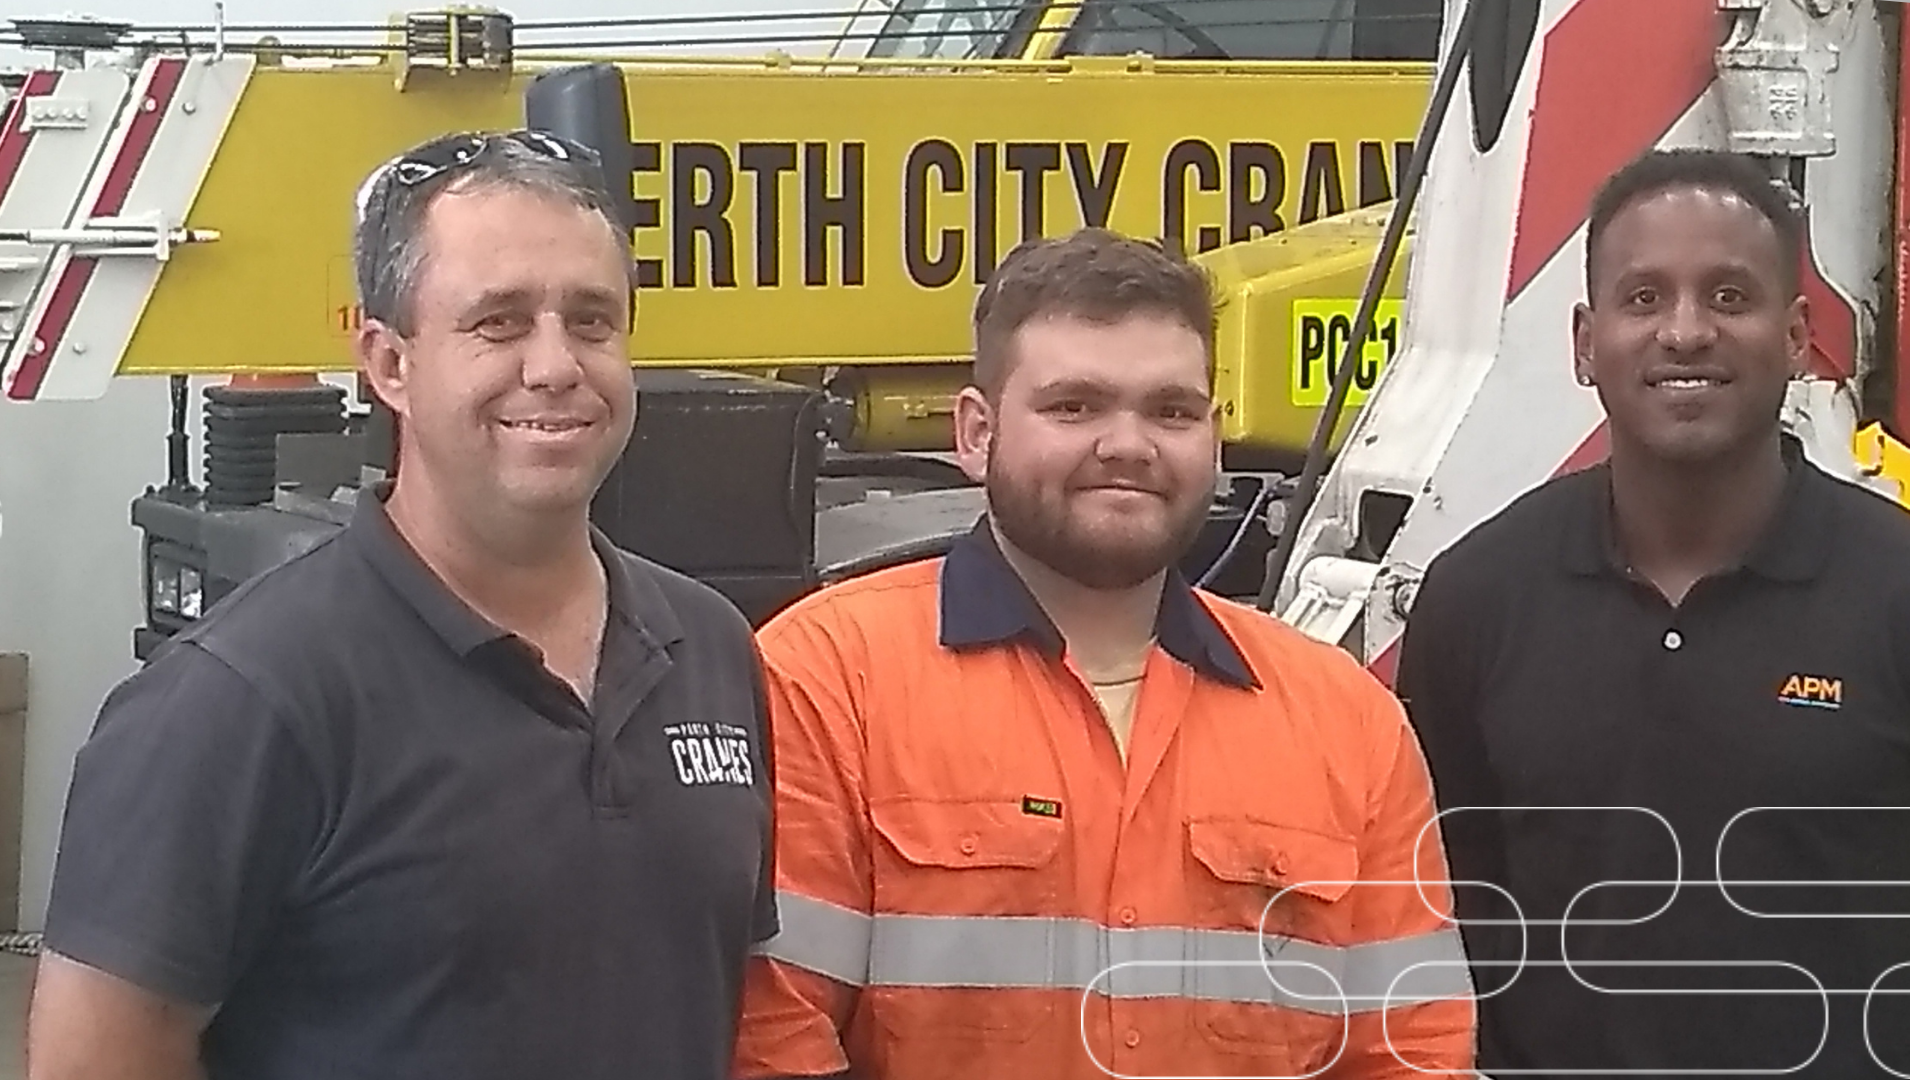 Jake stands, dressed in his hi-vis work uniform between his Perth City Cranes boss and his APM consultant